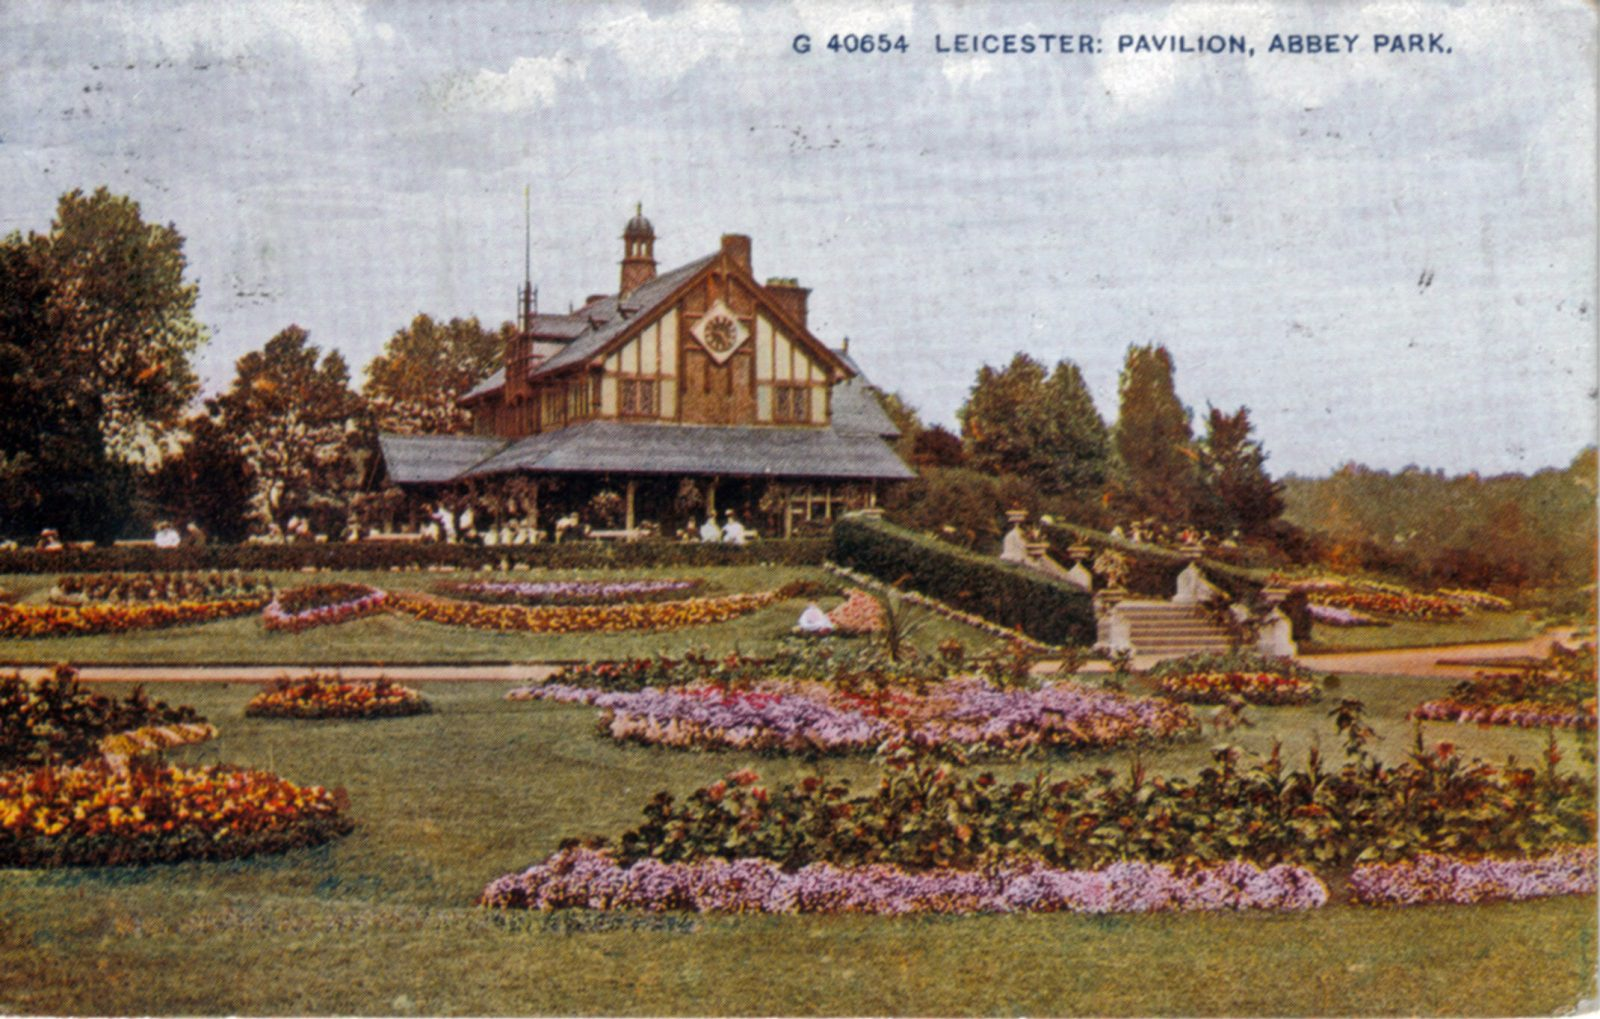 Abbey Park, Leicester. 1901-1920: Pavilion and carpet bedding. Posted 1904-10 (File:1290)